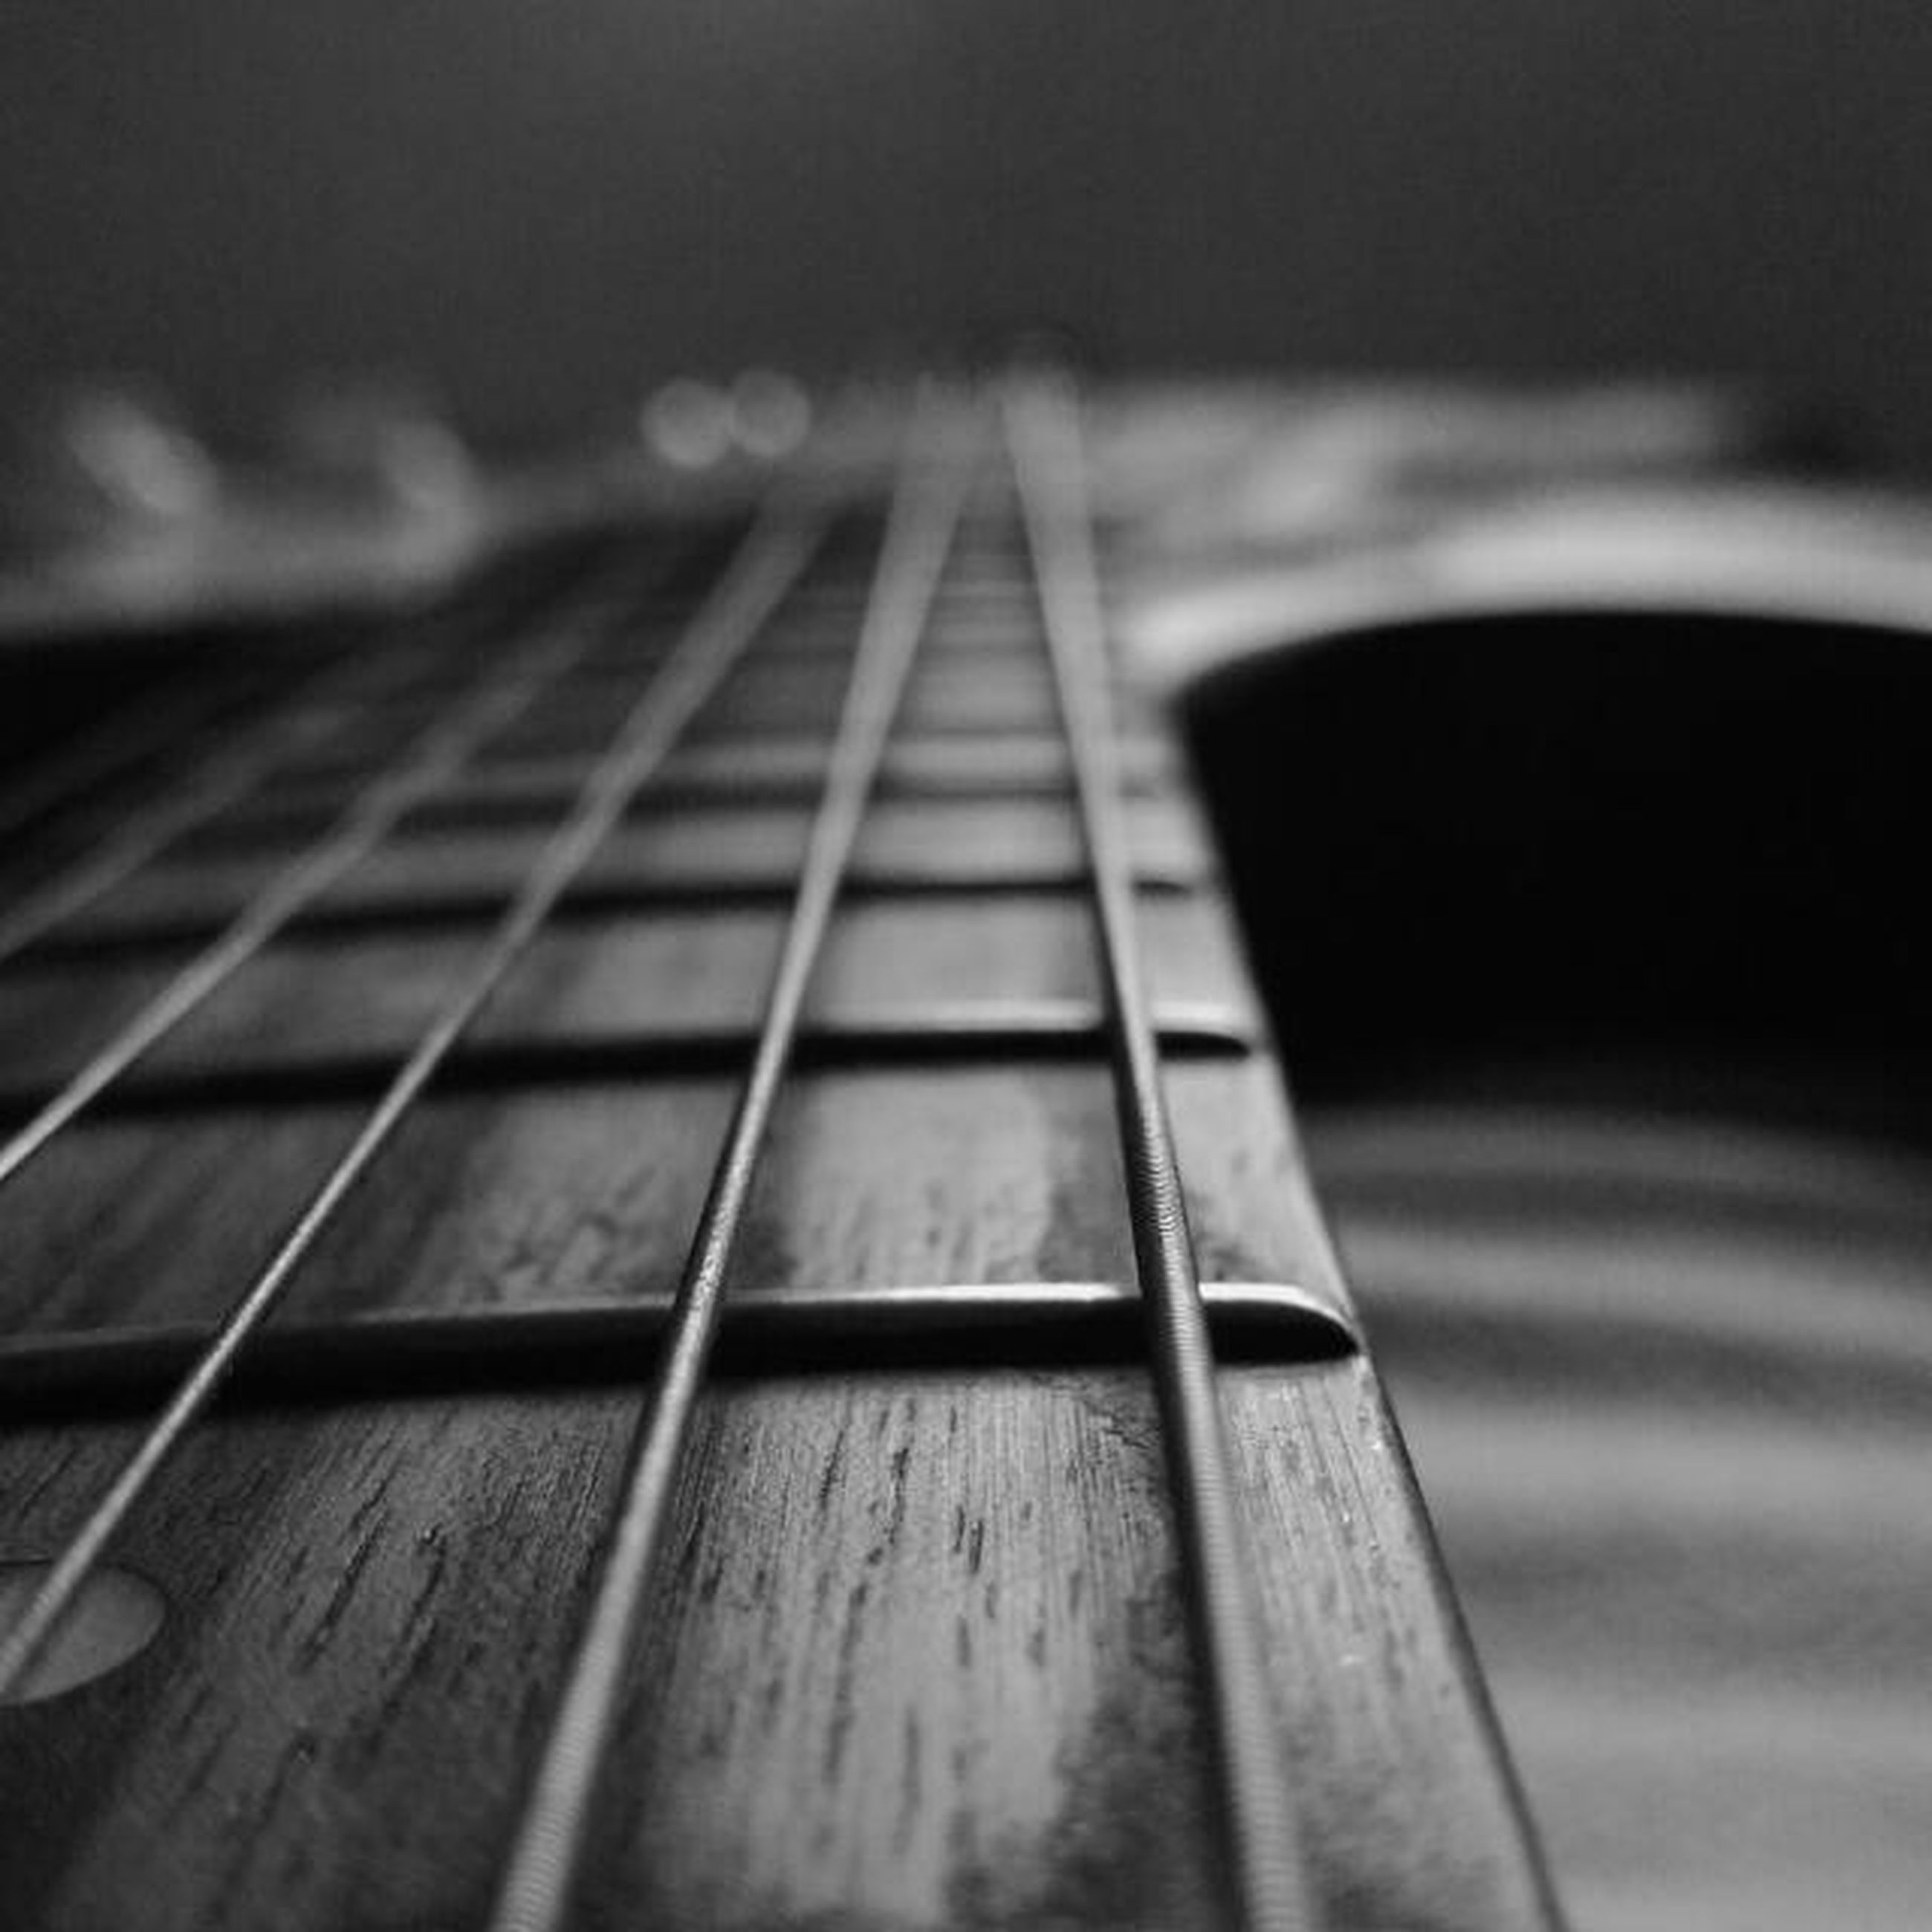 selective focus, indoors, wood - material, the way forward, surface level, close-up, focus on foreground, diminishing perspective, empty, metal, absence, no people, railing, shadow, steps, musical instrument, music, wood, steps and staircases, wooden